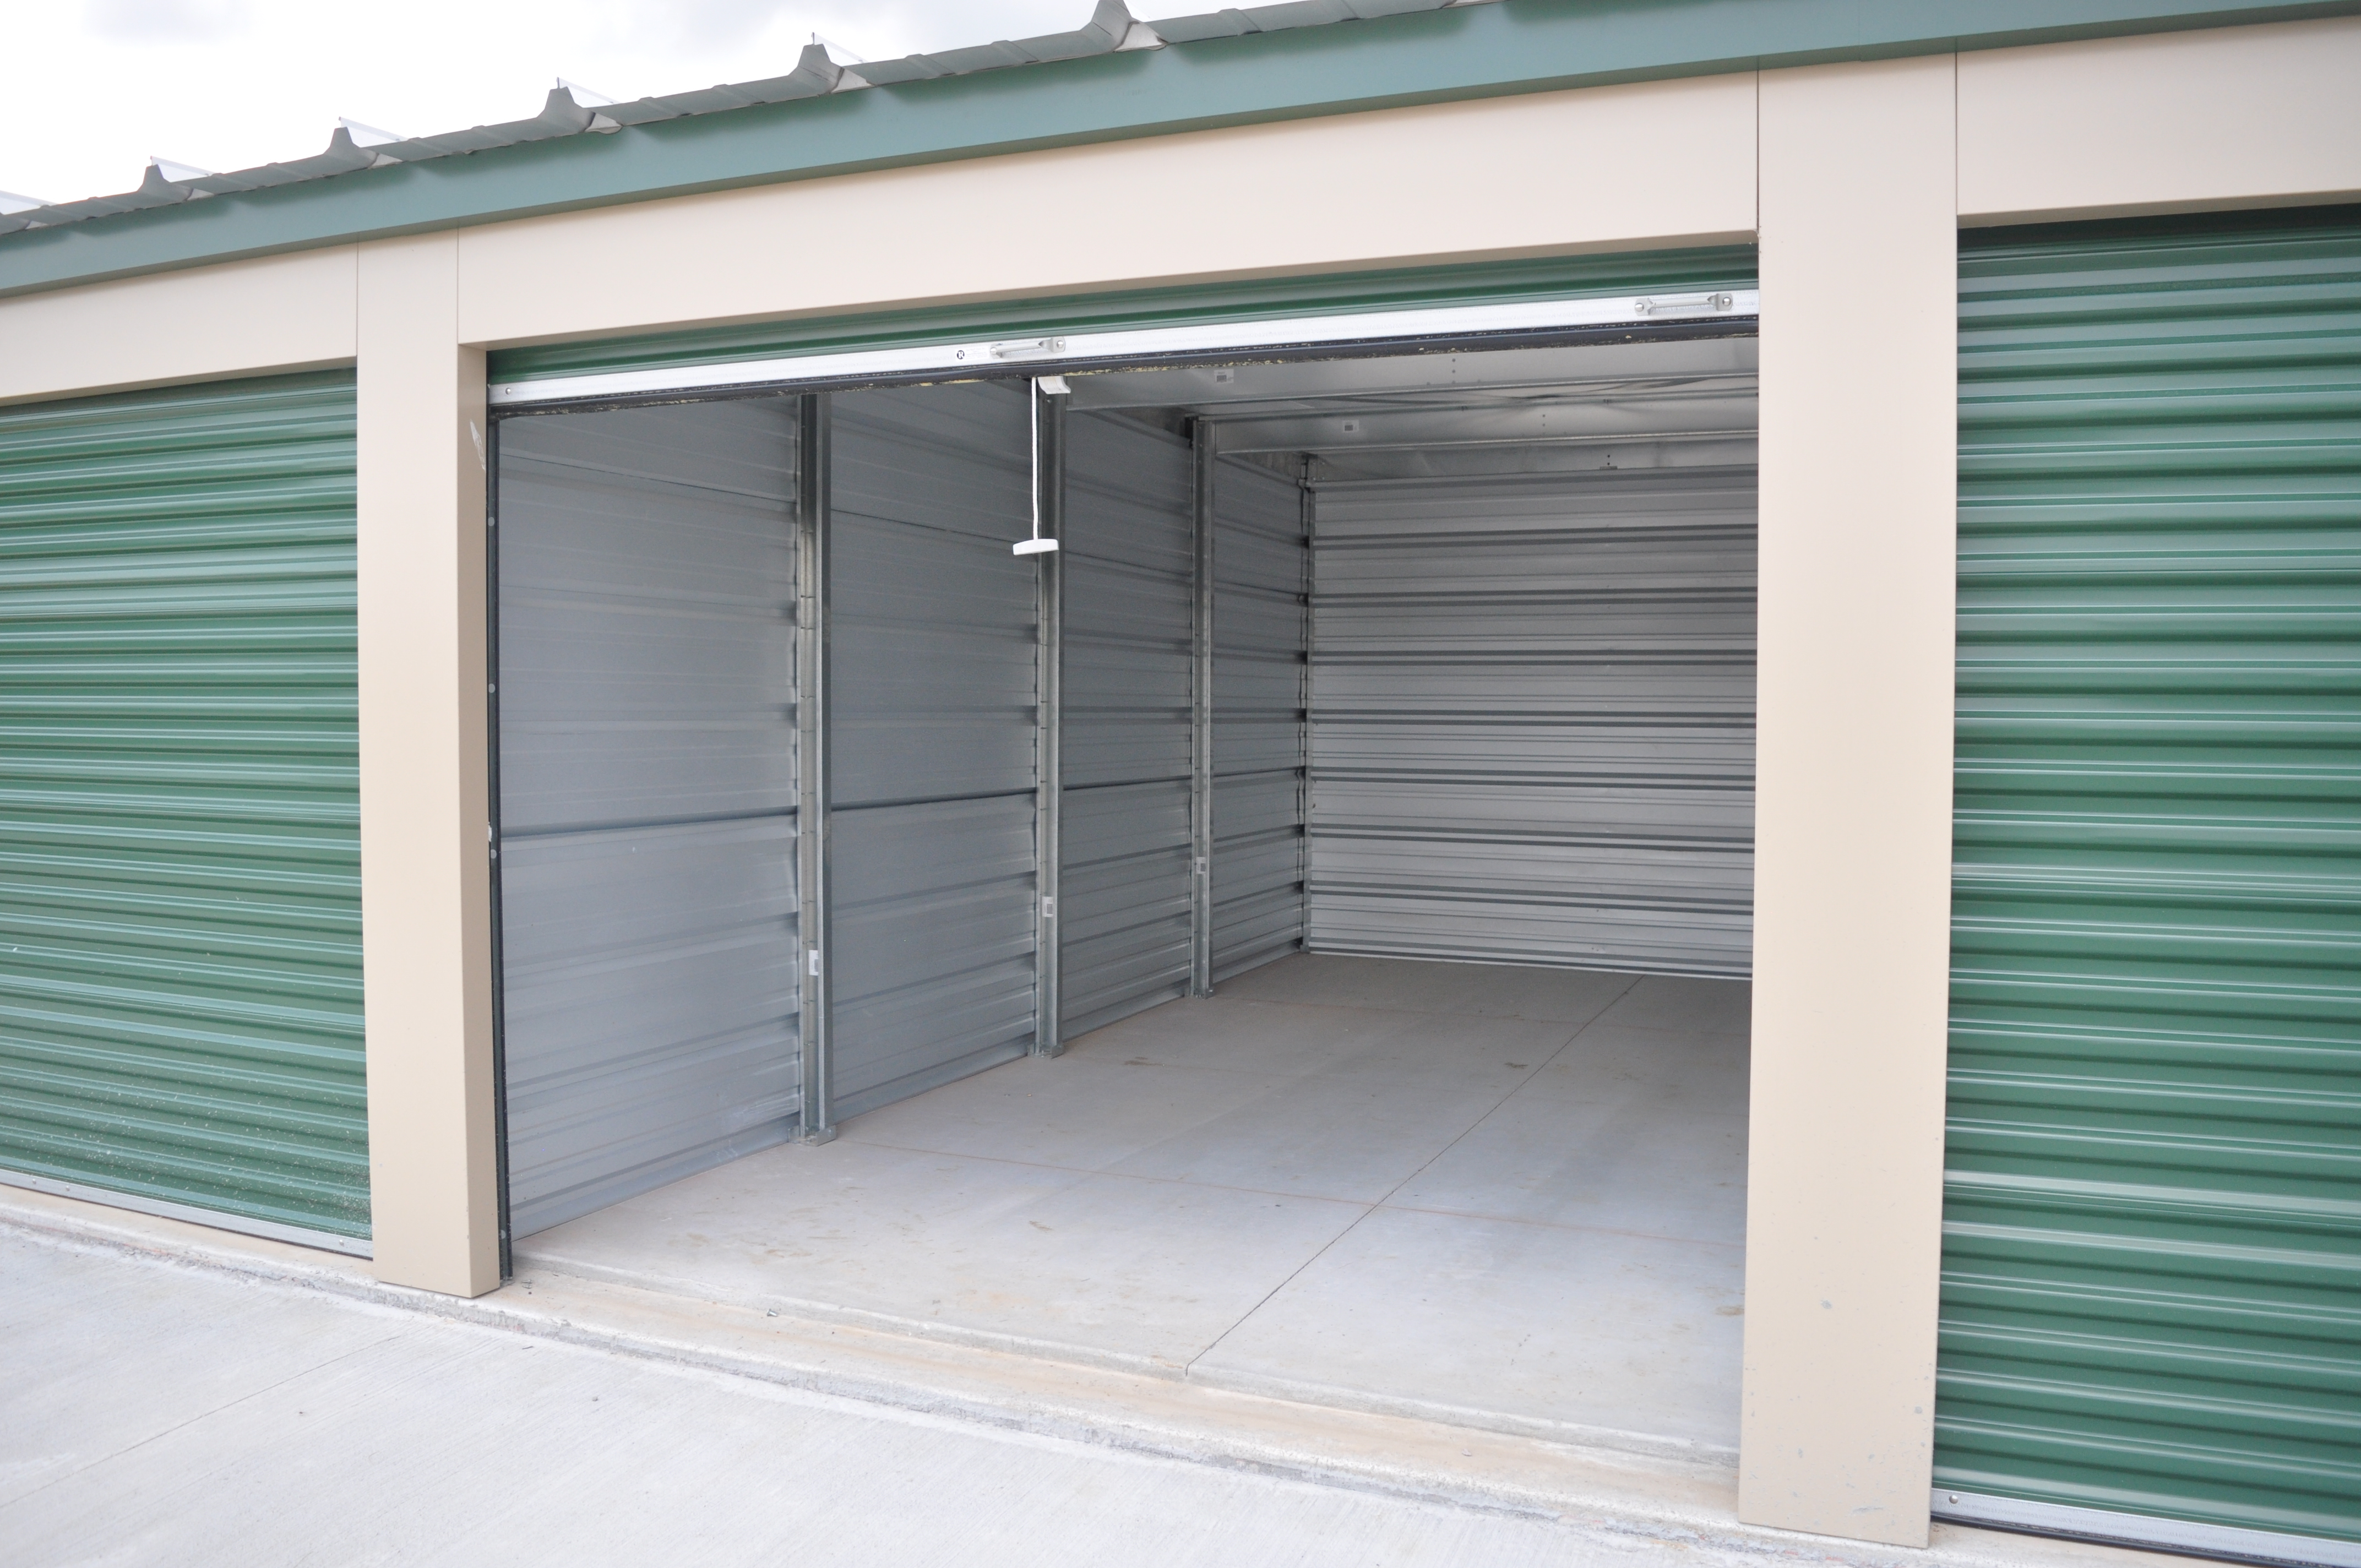 clean new storage units ready to move into